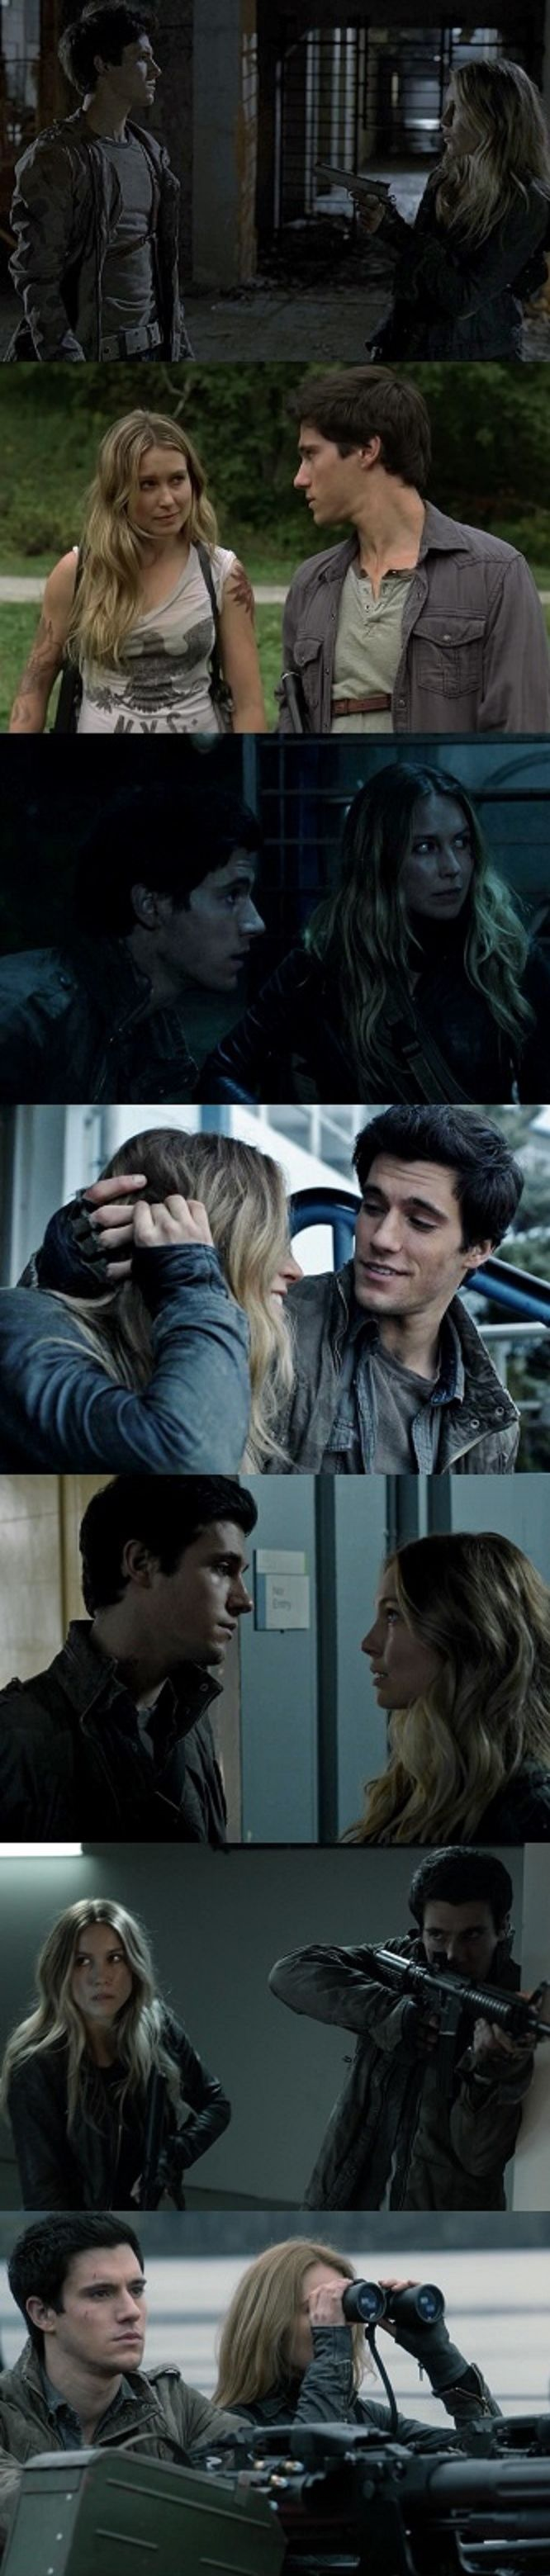 Maggie and Hal from Falling Skies. I've basically loved them since the very beginning, and with Season 4 right around the corner, my fear/excitement is growing